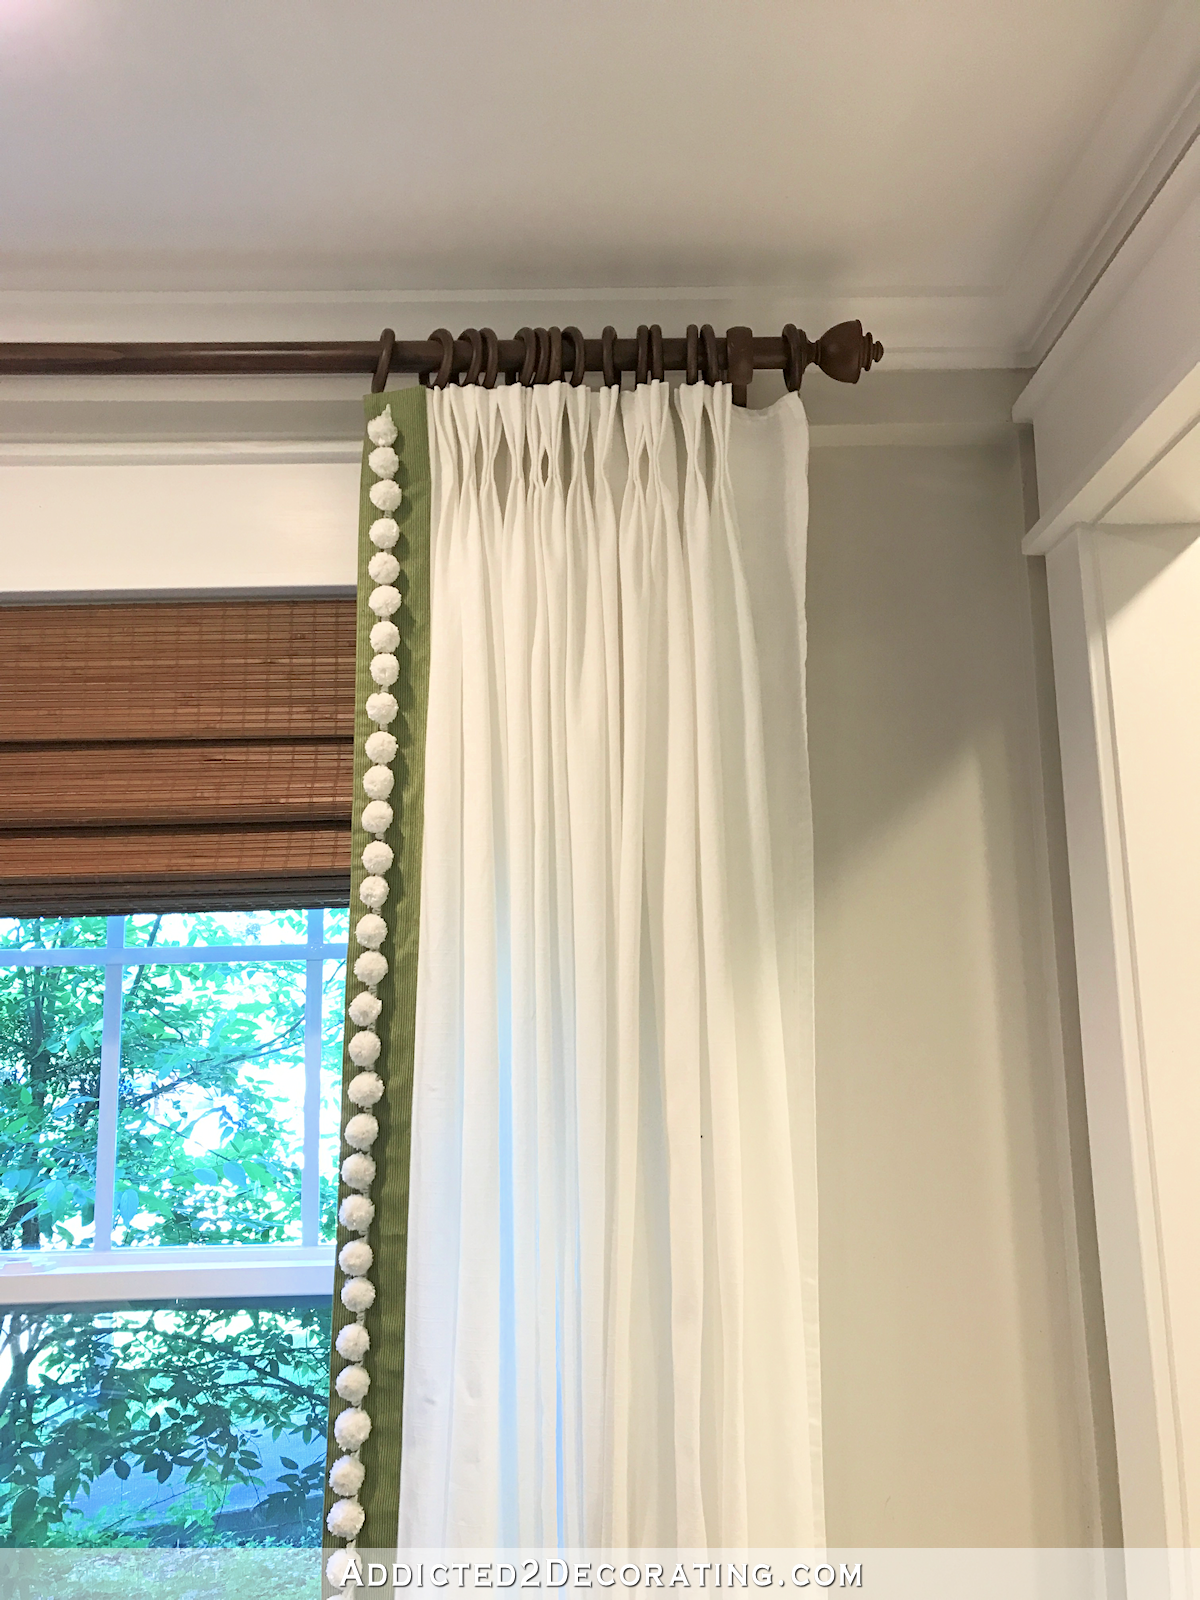 Customize IKEA Ritva Curtains With Contras Edge Banding Pom Trim And Pinch Pleats